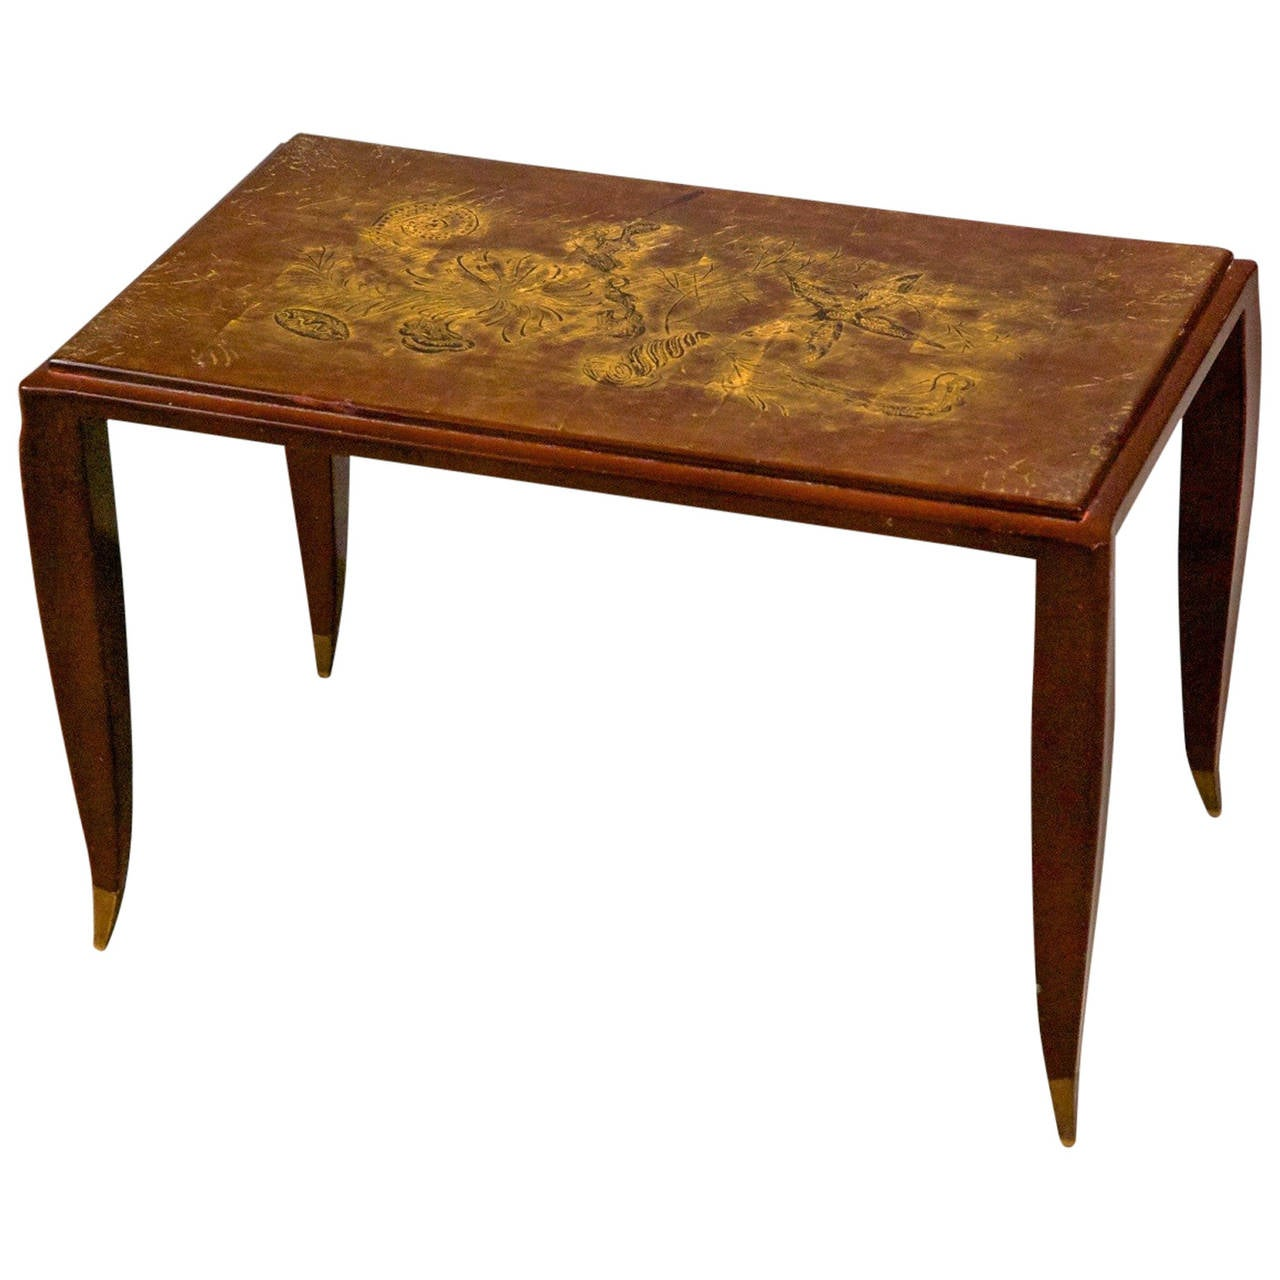 Jean Pascaud Small Lacquered Side or Coffee Table For Sale  : 1093848l from www.1stdibs.com size 1280 x 1280 jpeg 109kB